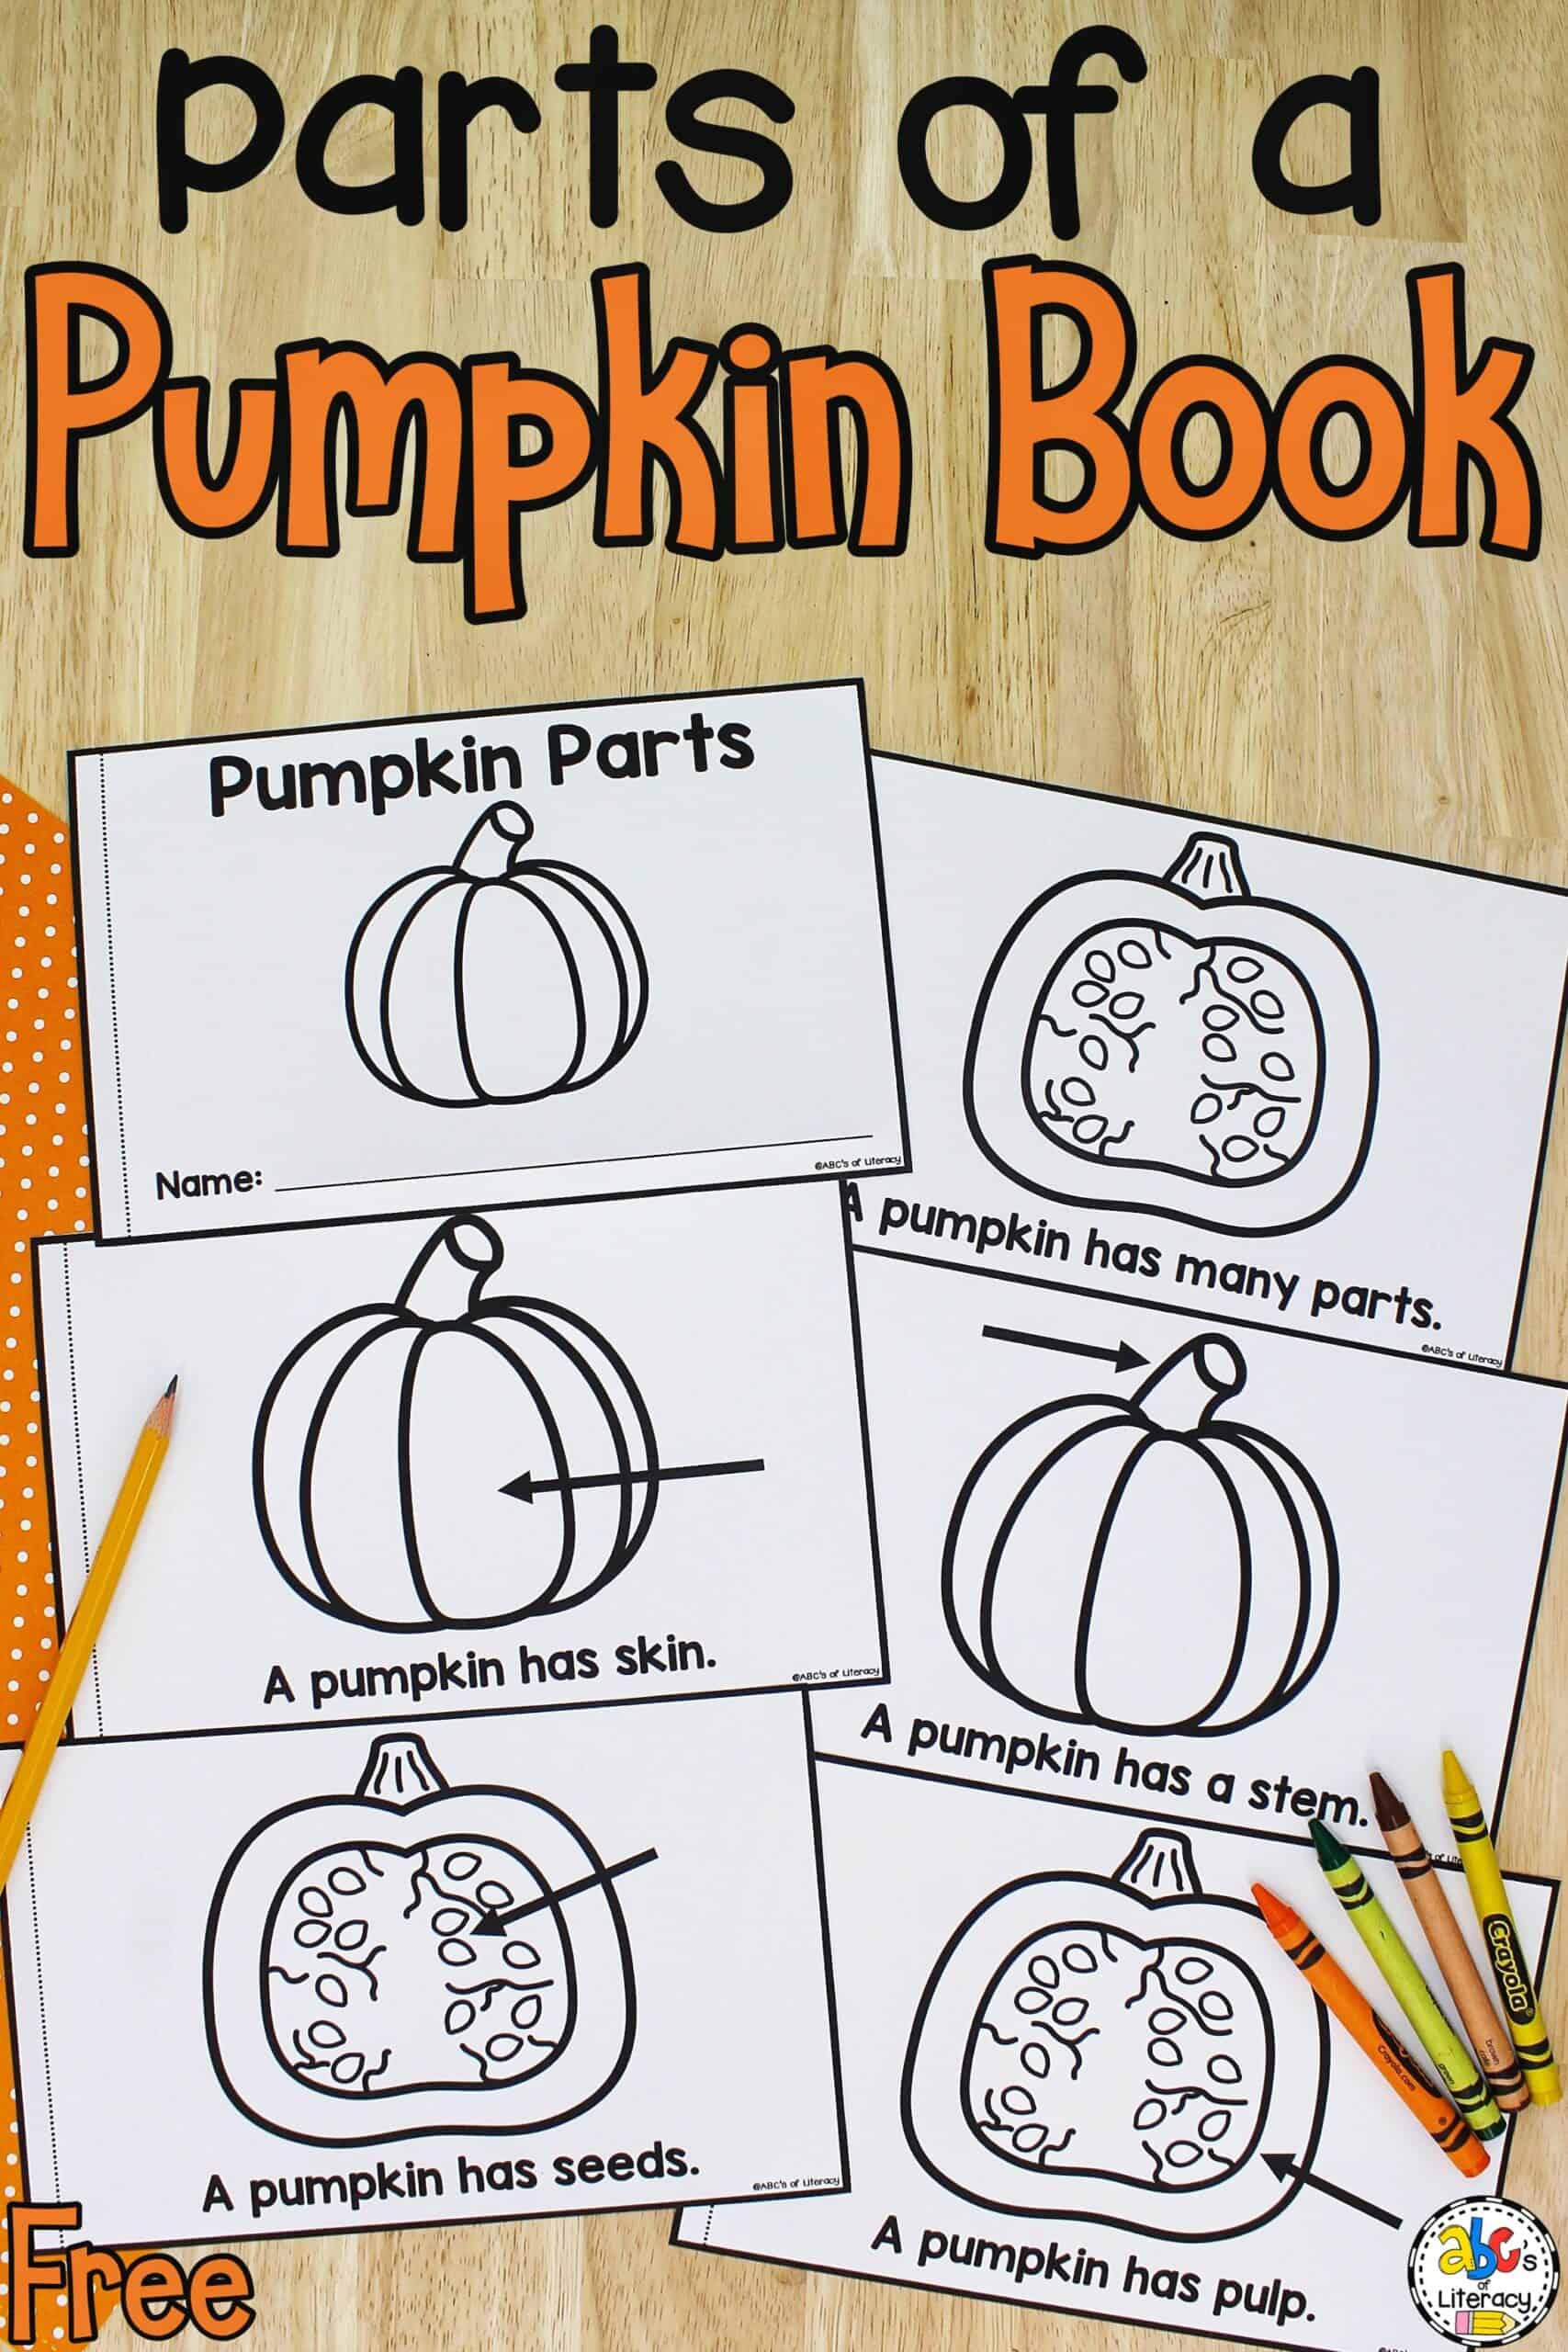 Parts of a Pumpkin Book